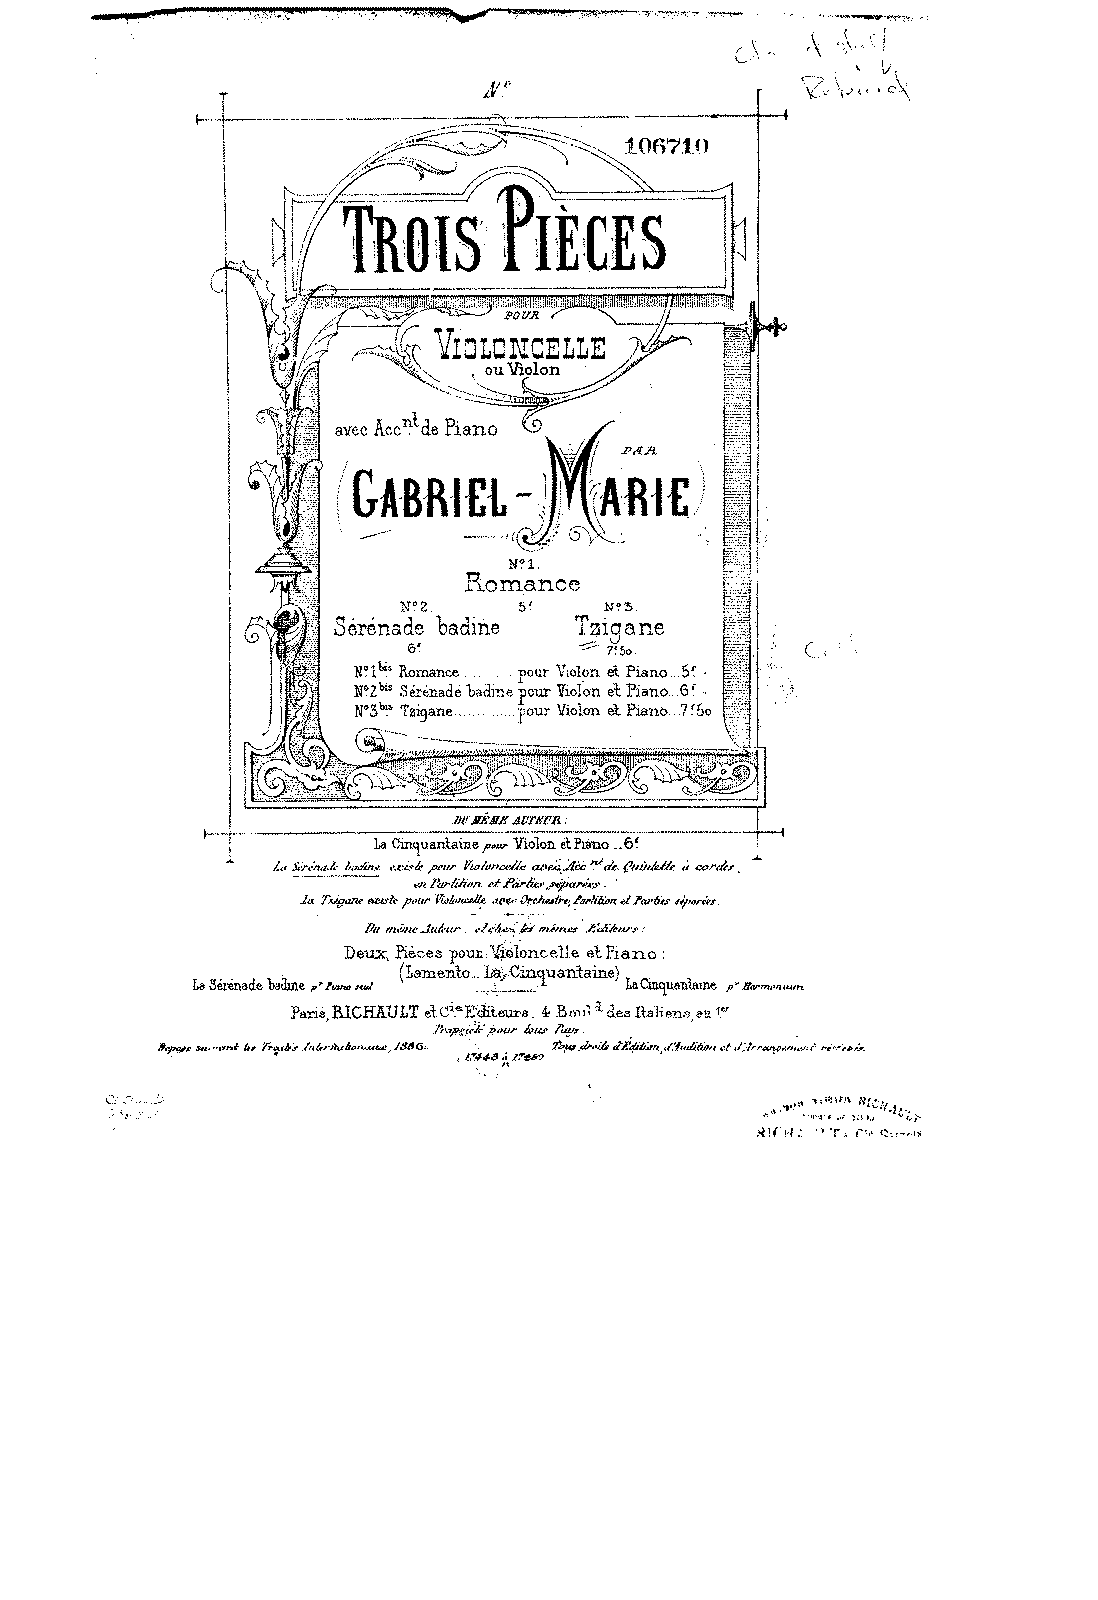 PMLP137549-Marie - Tzigane for Cello and Piano from 3 Pieces No3 score.pdf